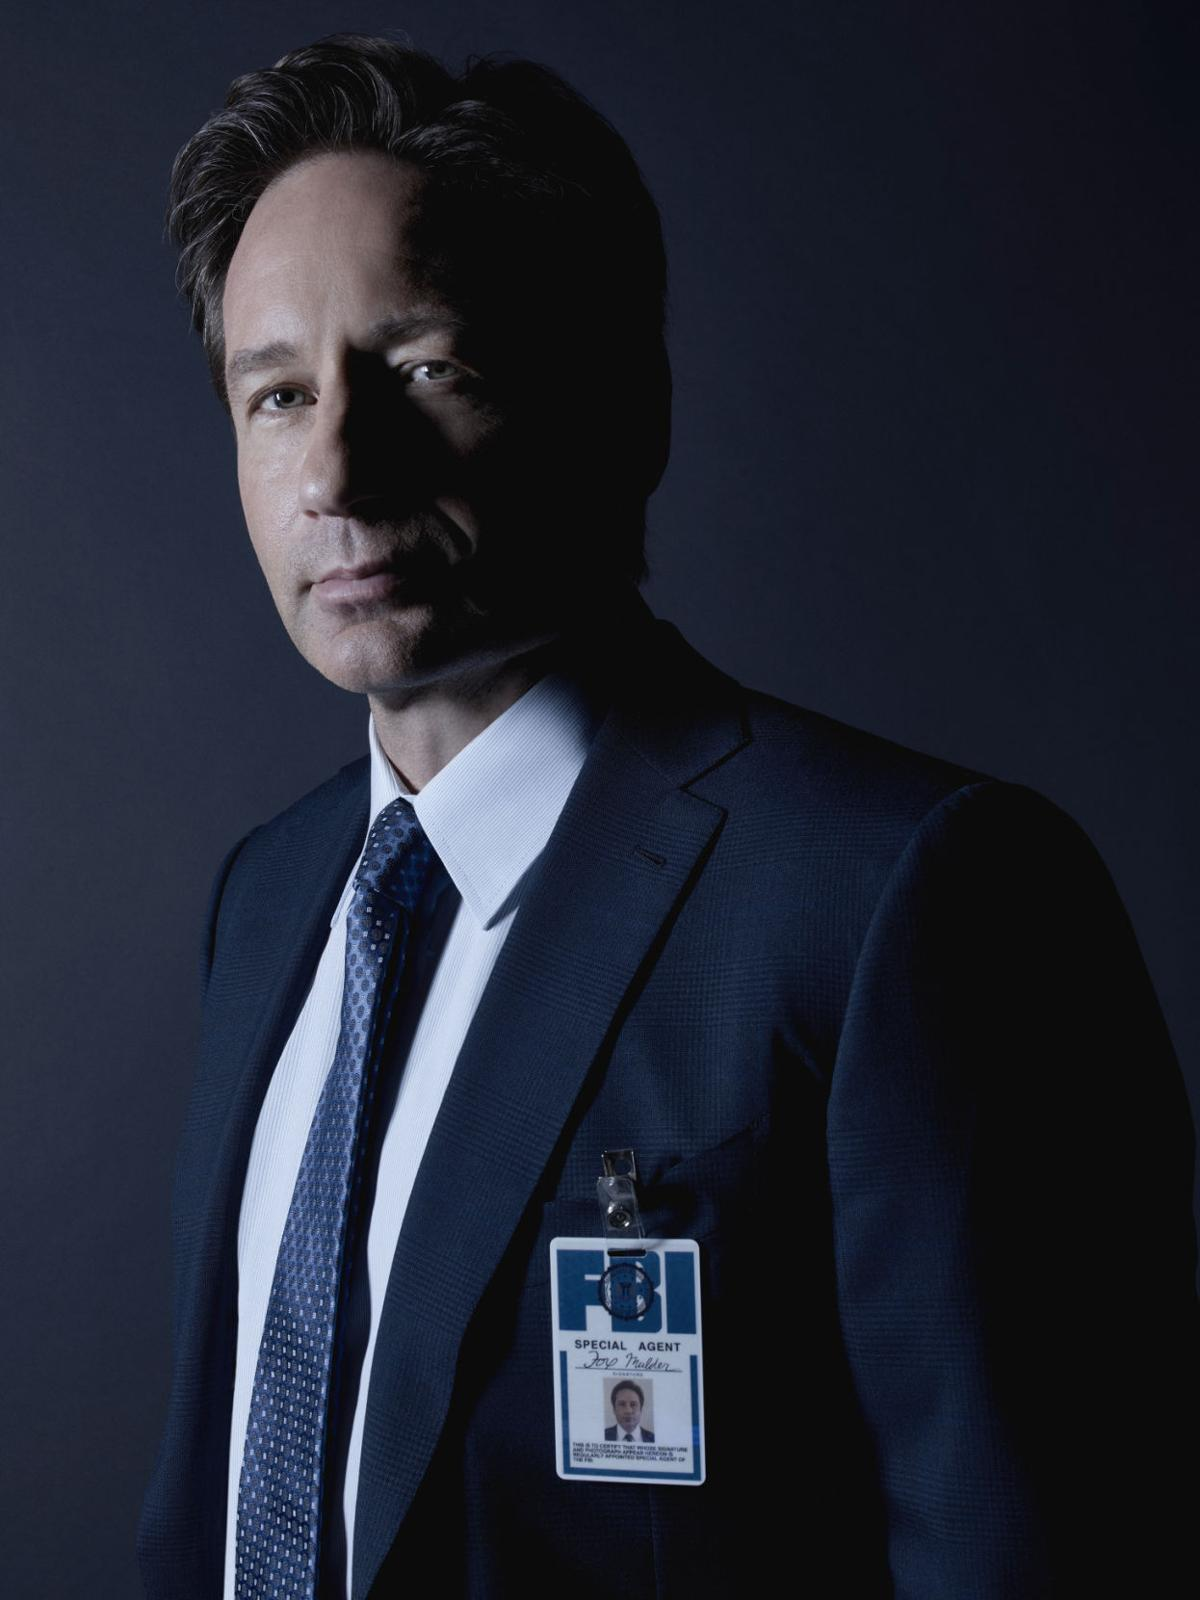 X-Files' returns: The truth is still out there | Television